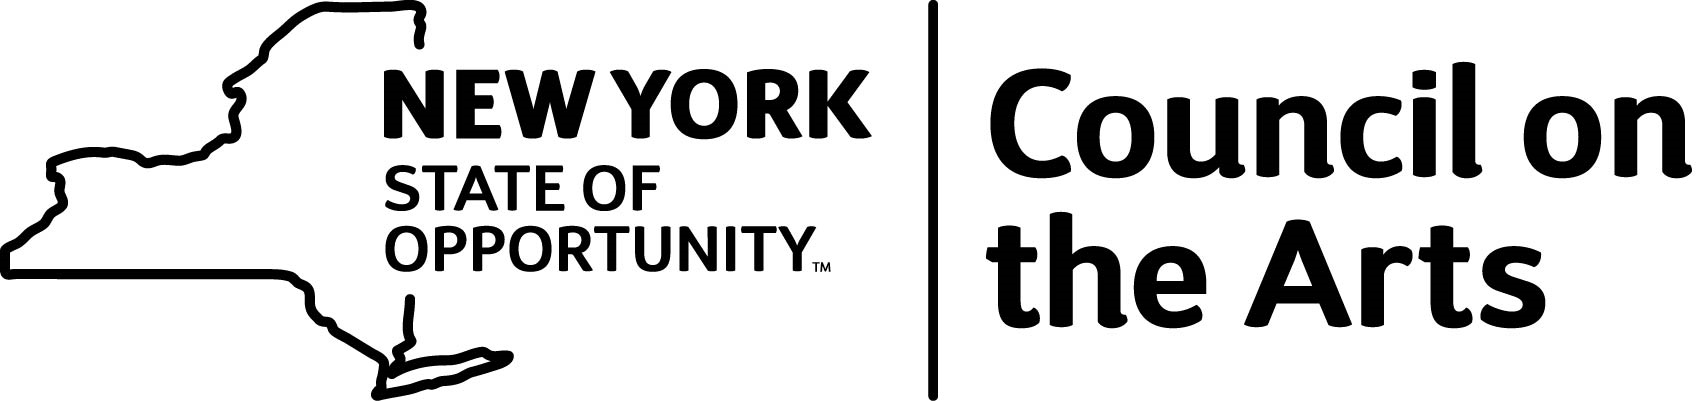 NYC council on the arts logo